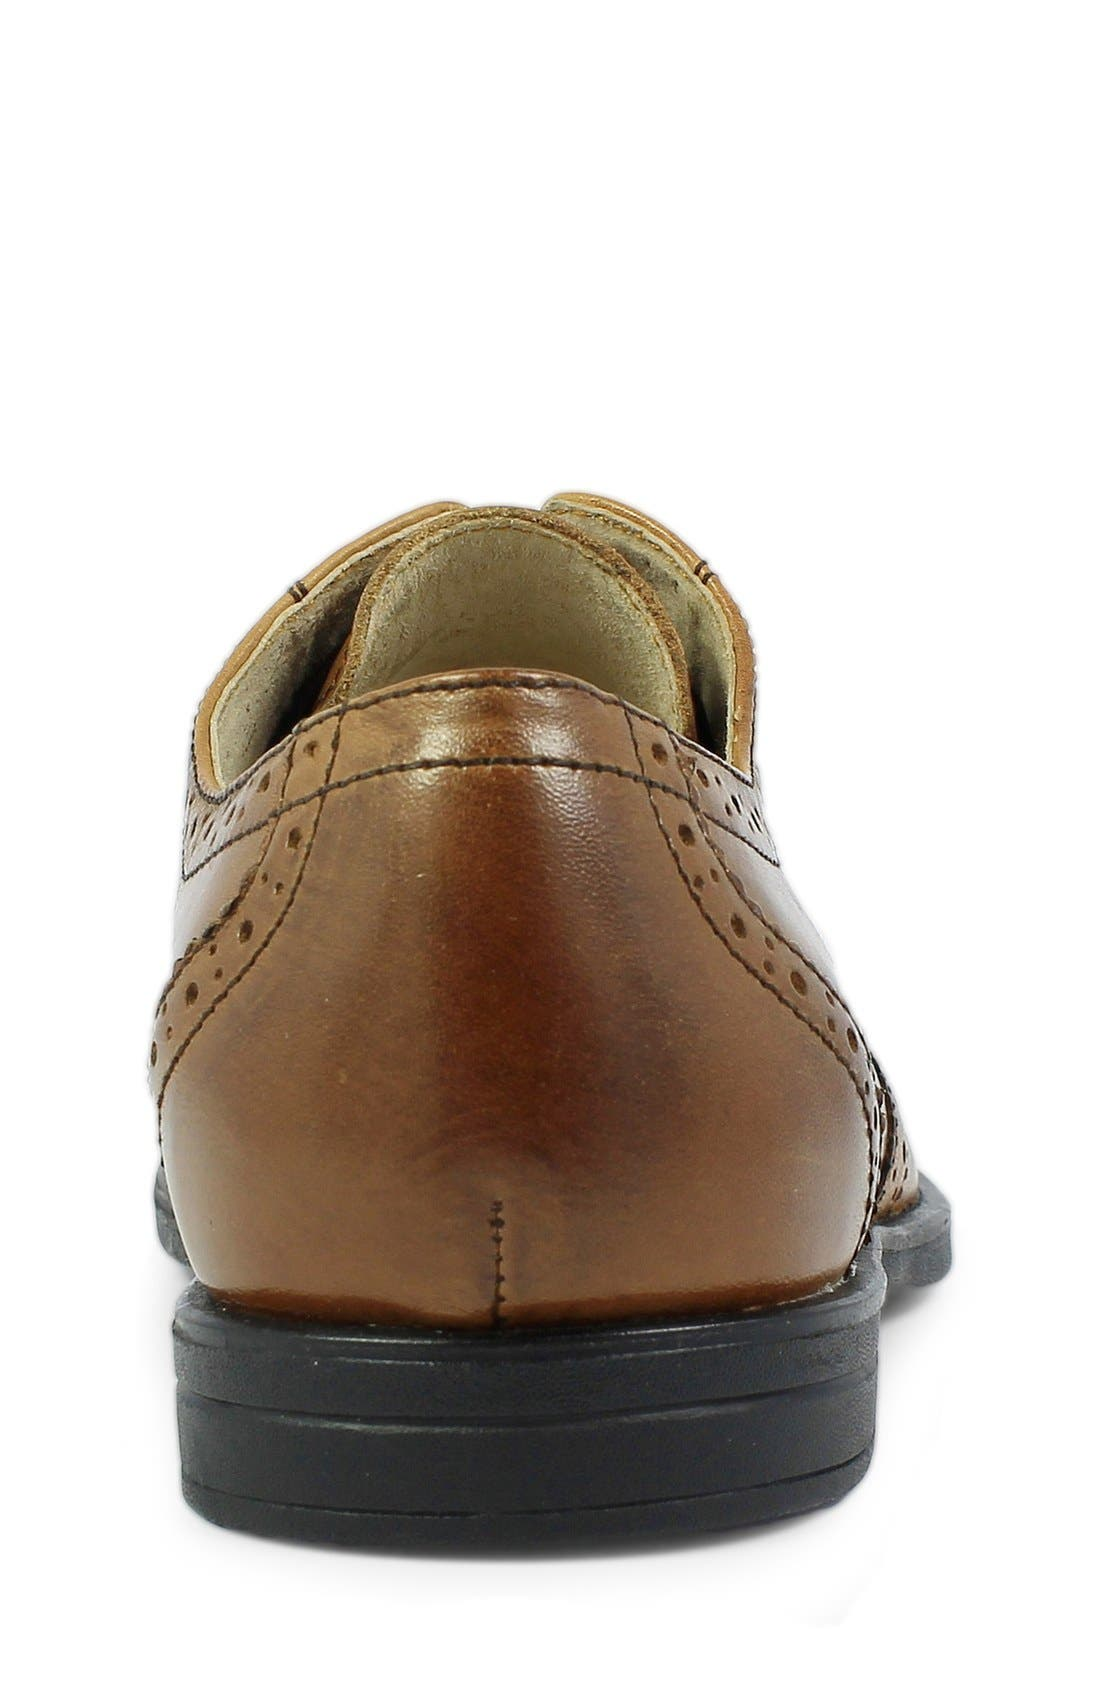 'Reveal' Wingtip Oxford,                             Alternate thumbnail 6, color,                             COGNAC LEATHER